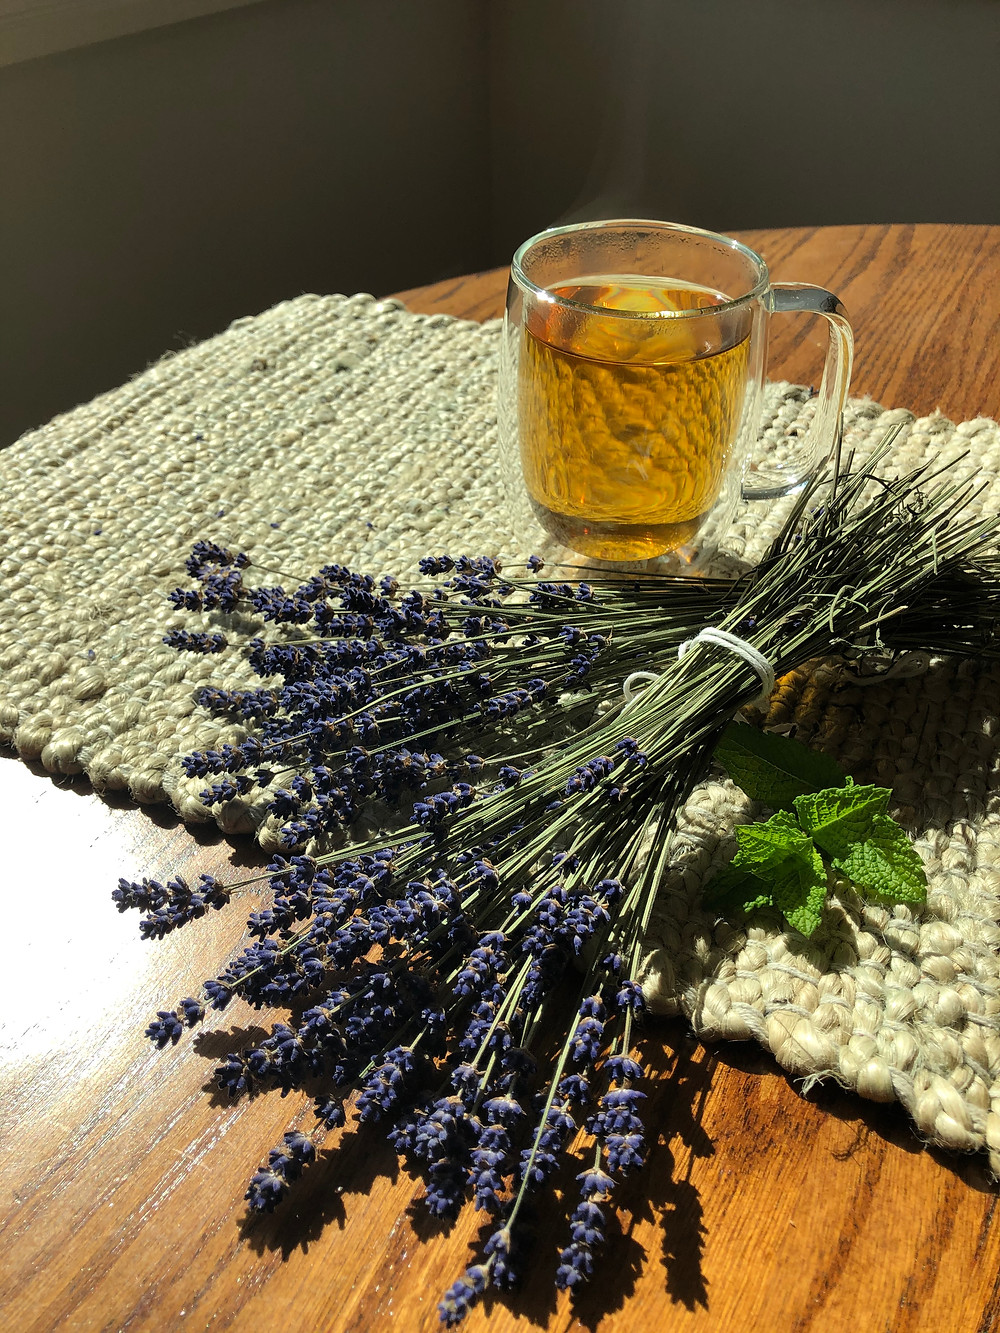 Bunches of Dried Lavender and Fresh Mint Spring with Steaming Lavender Tea in a Clear Mug